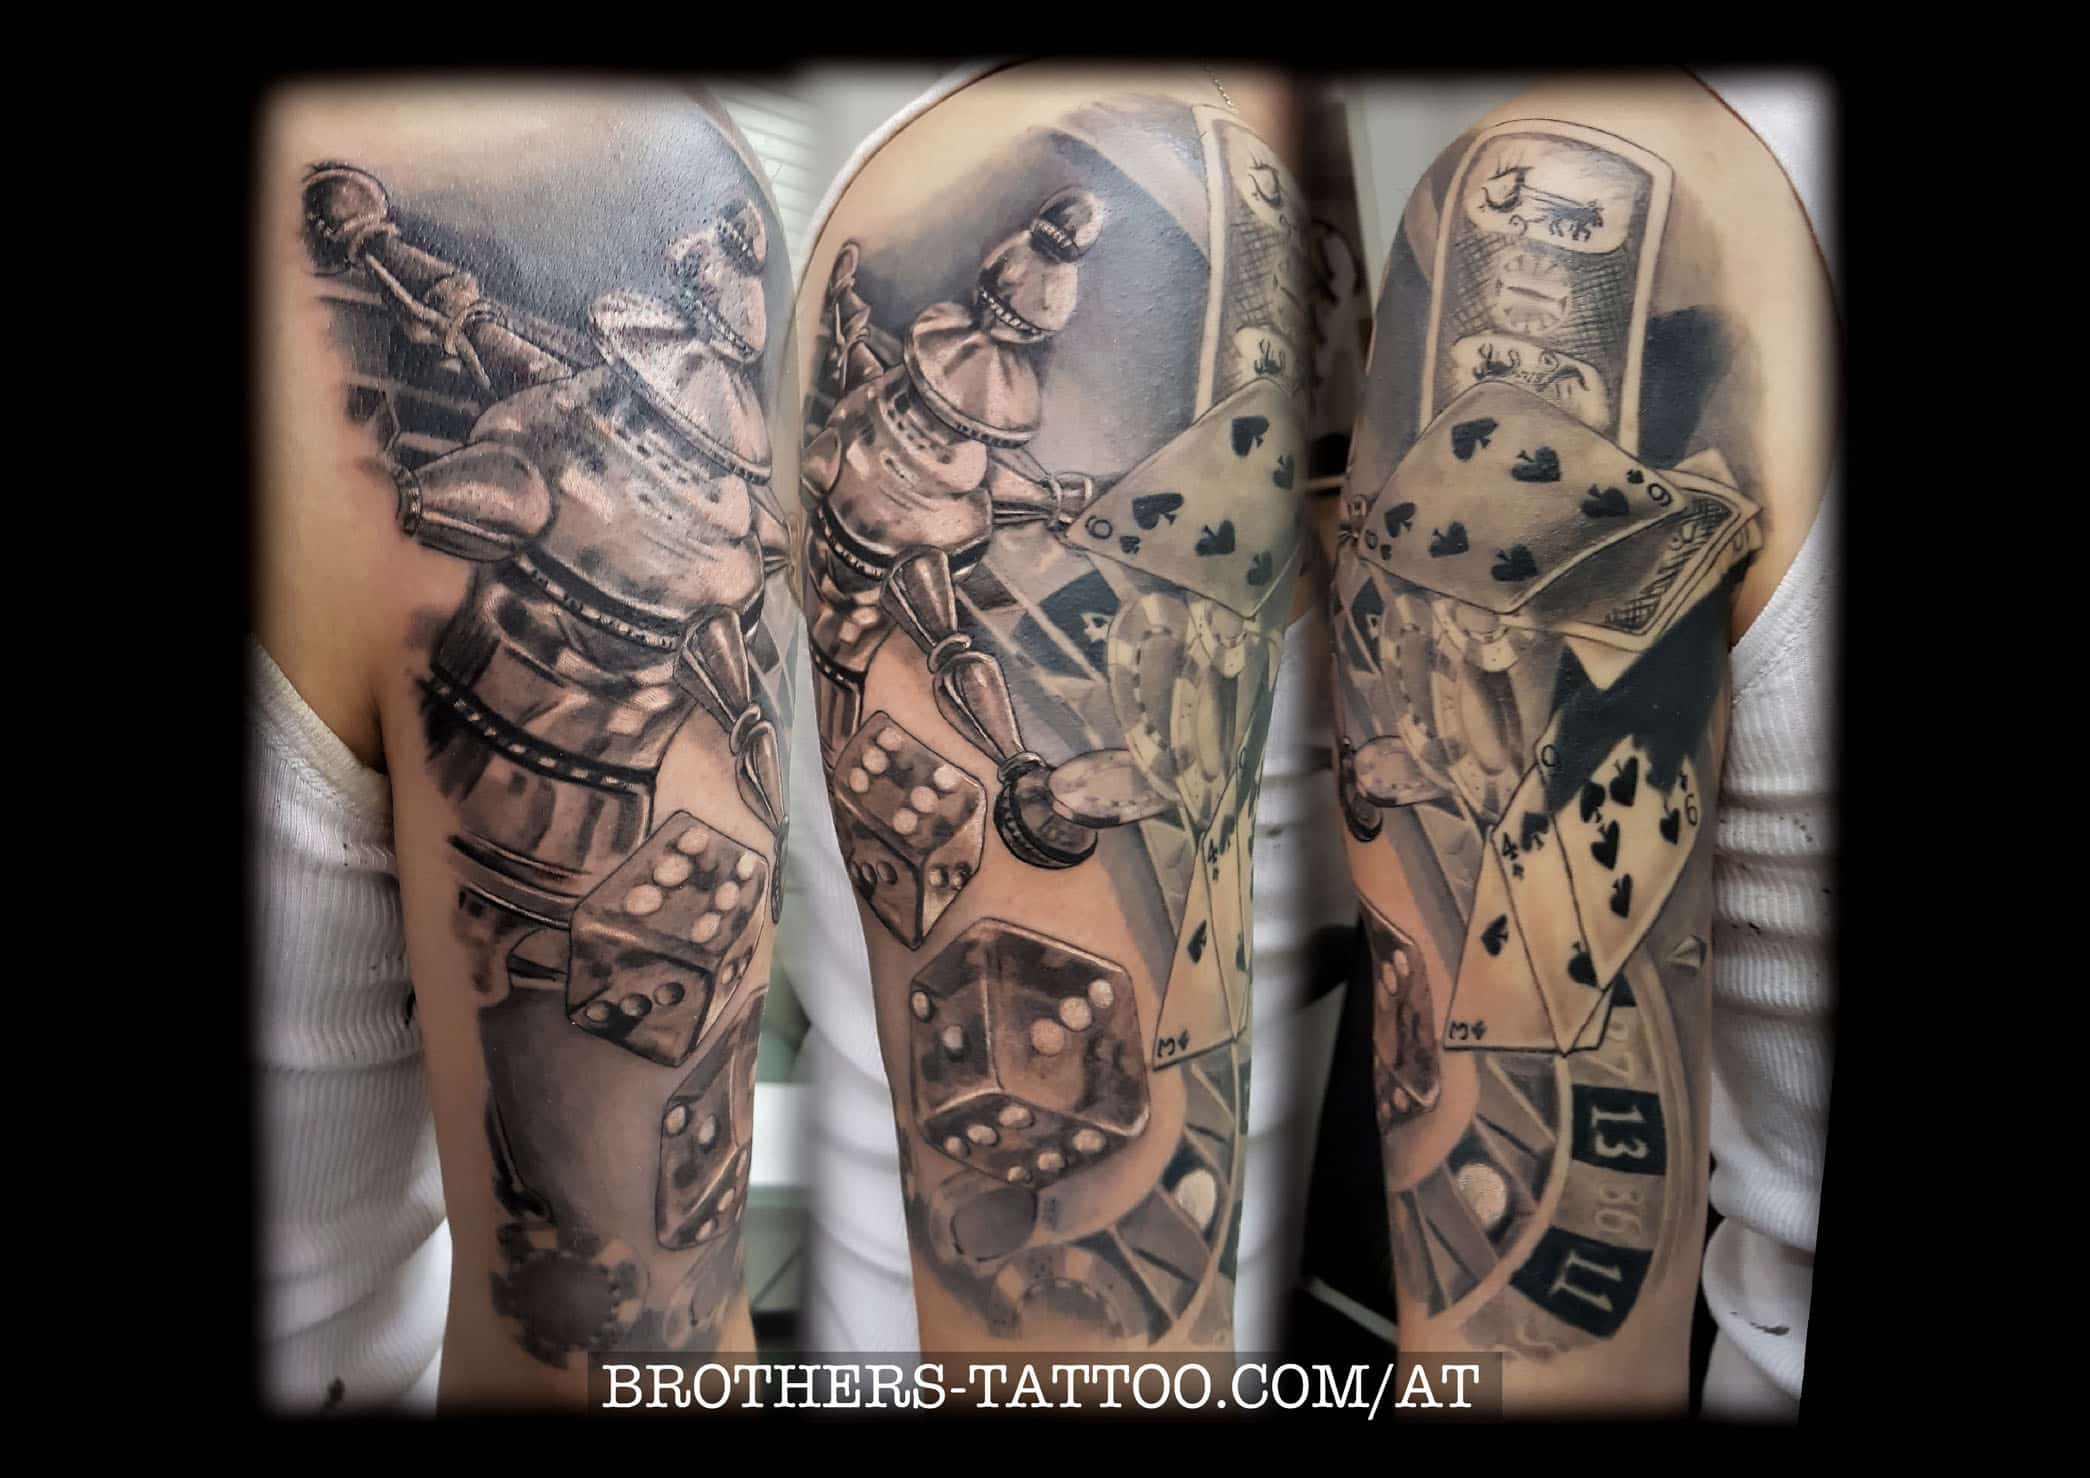 Biomechanik Tattoo Ganzer Arm tattoo stilarten • brothers tattoo & piercing aus linz in